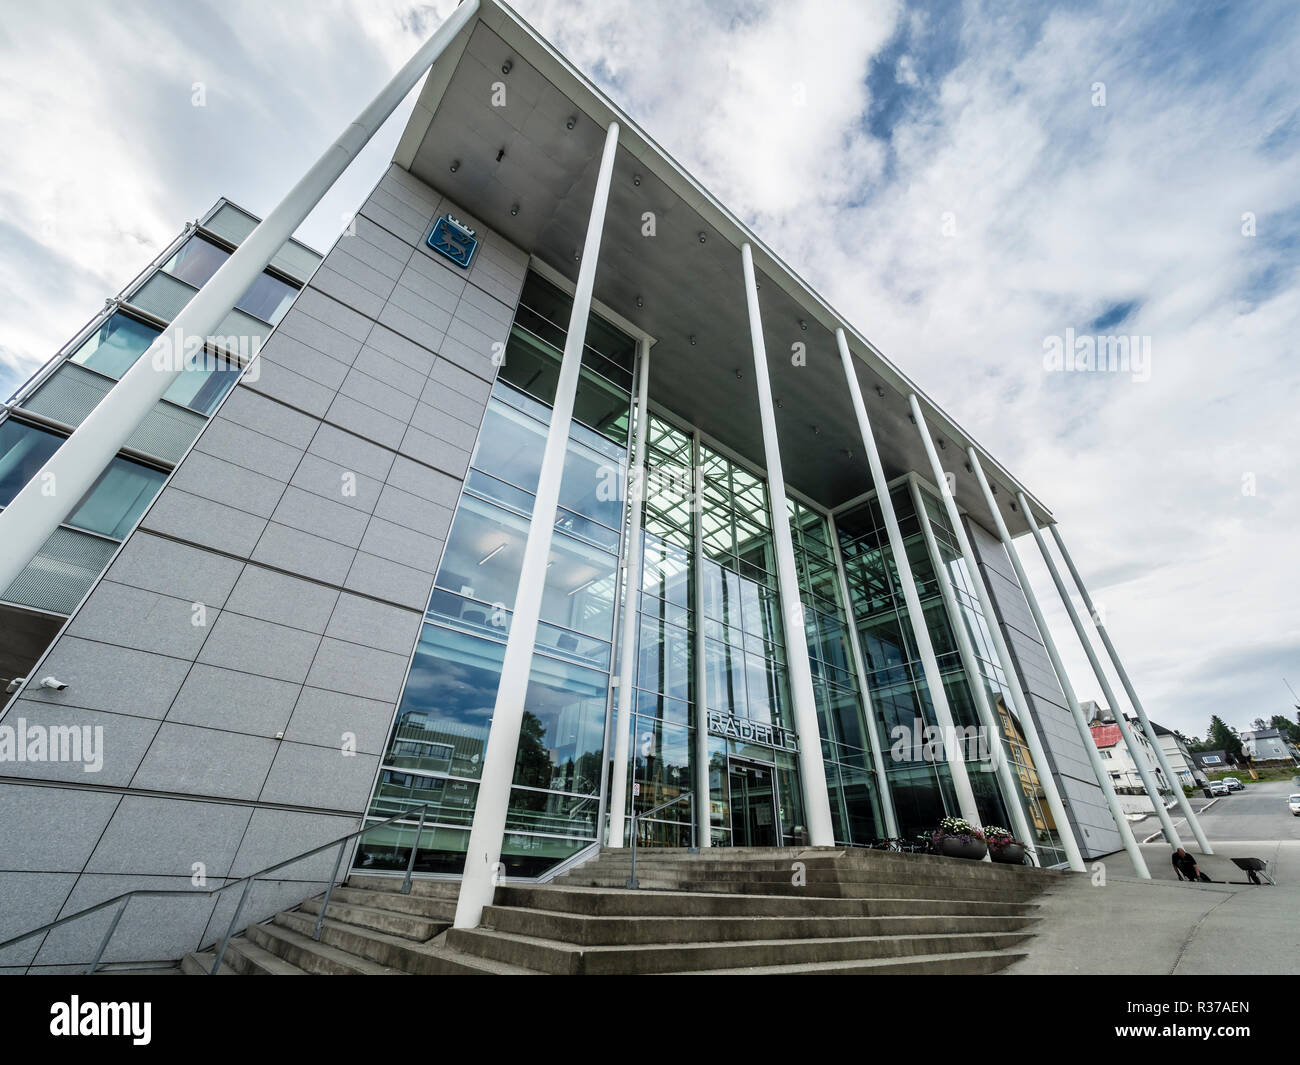 New City Hall, Radhus, town hall, modern architecture with large glass facade, Tromsö, Norway Stock Photo